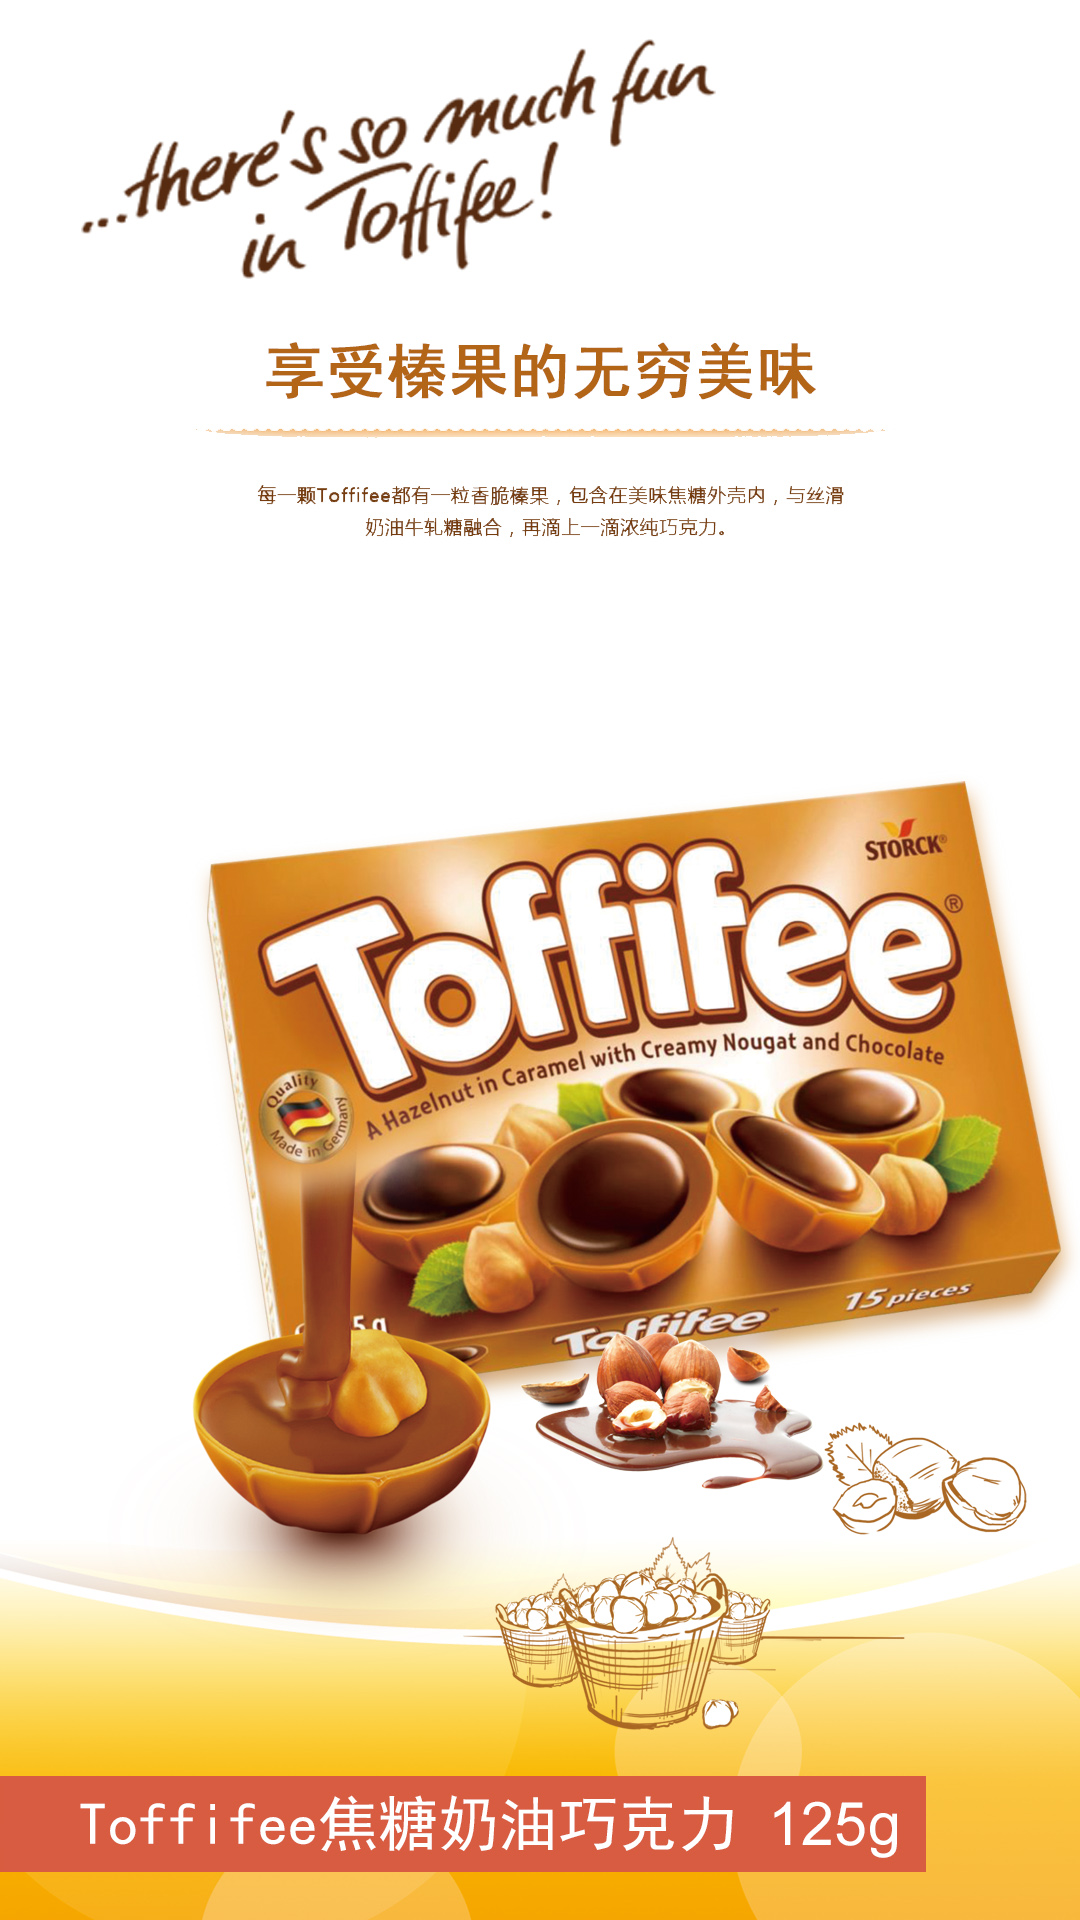 Toffifee hazelnut Caramel flavored chocolate